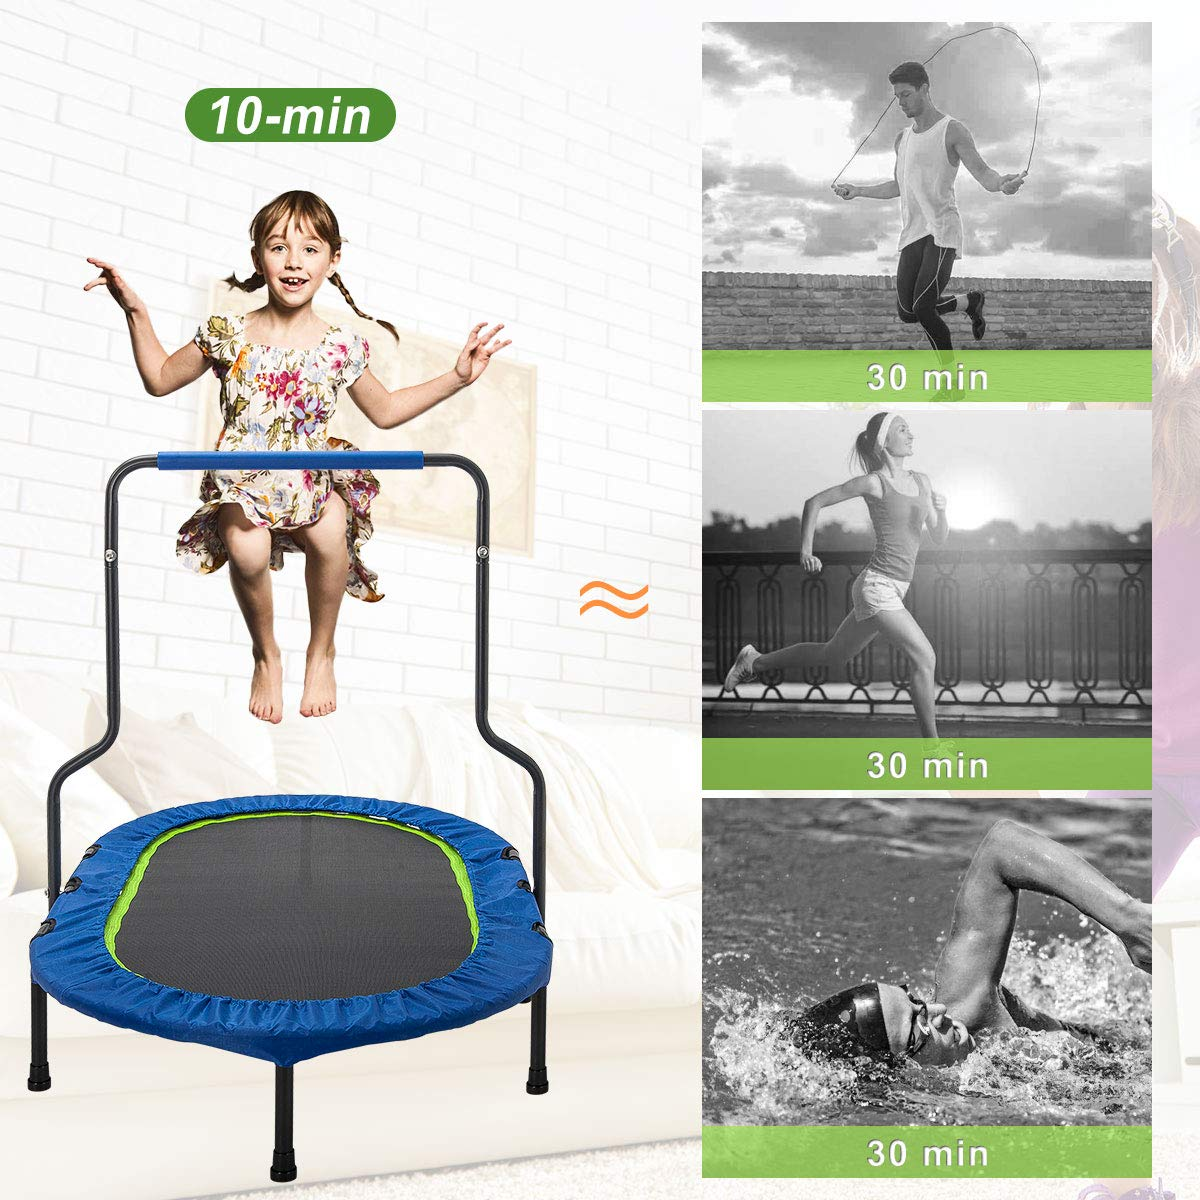 Merax Mini Rebounder Trampoline with Handle for Two Kids, Parent-Child Trampoline (Blue) by Merax (Image #5)